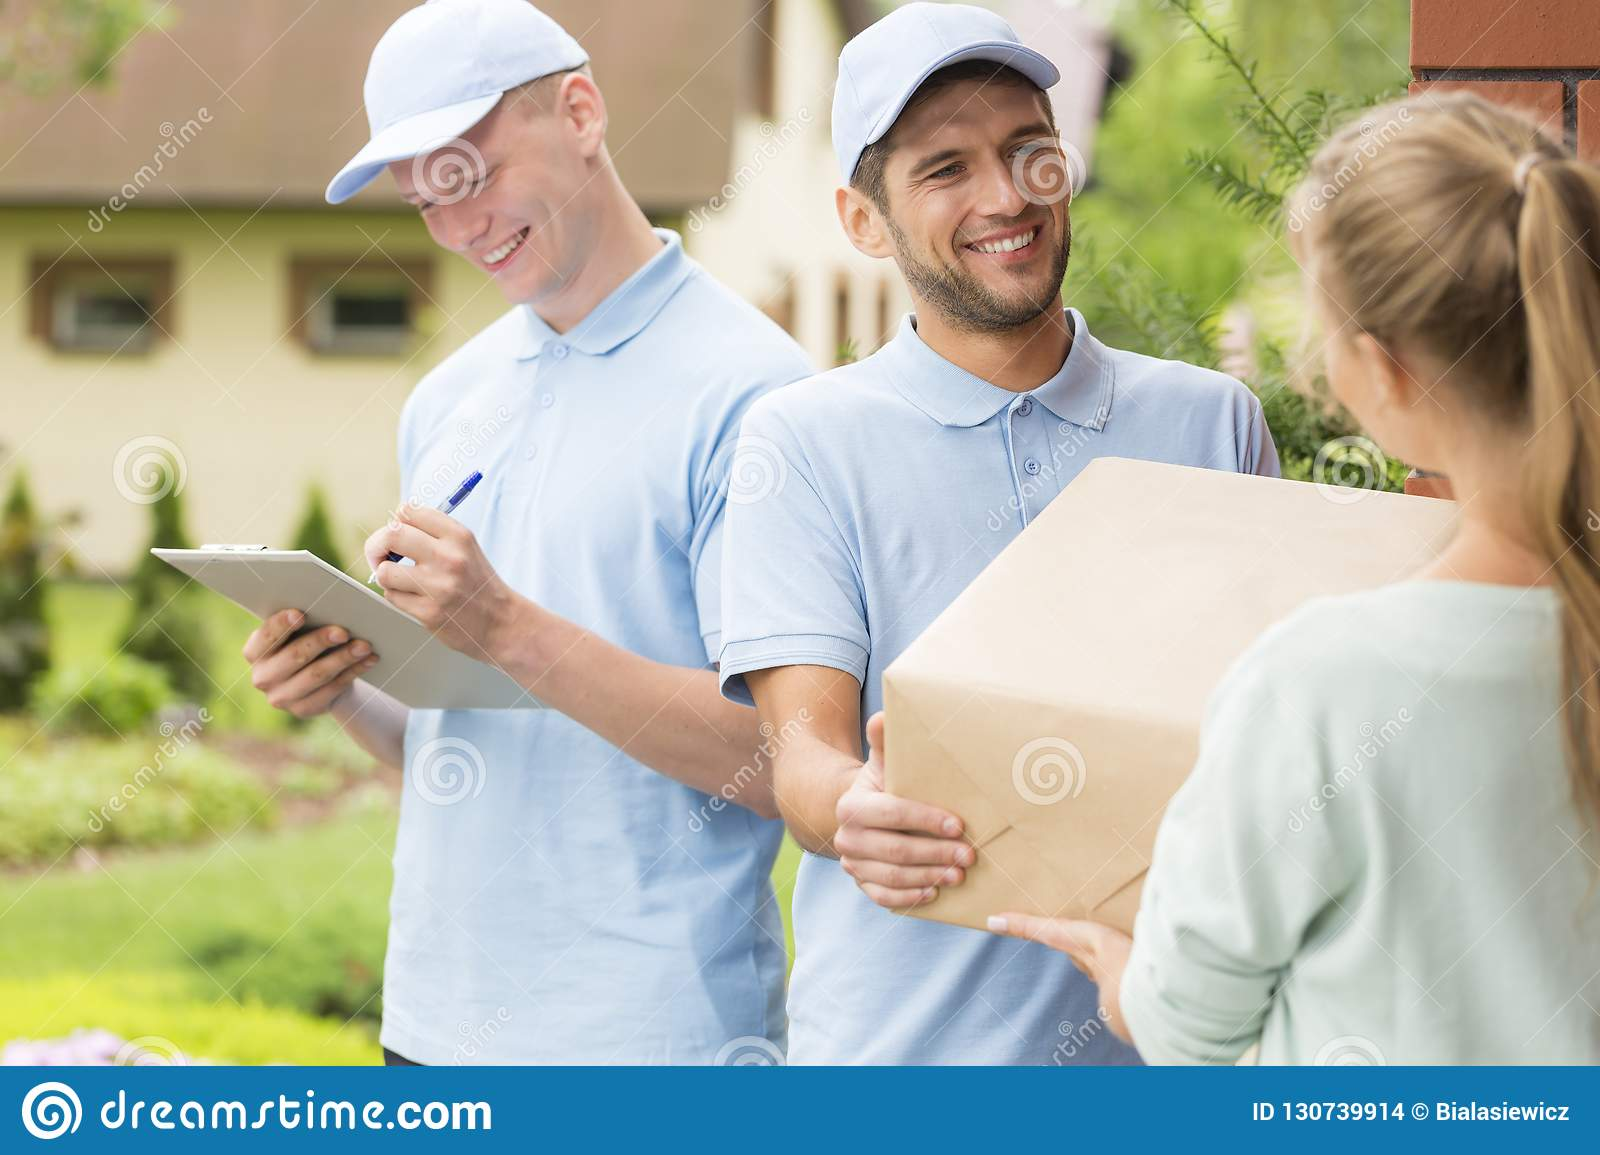 Couriers in blue uniforms and caps giving package to a customer